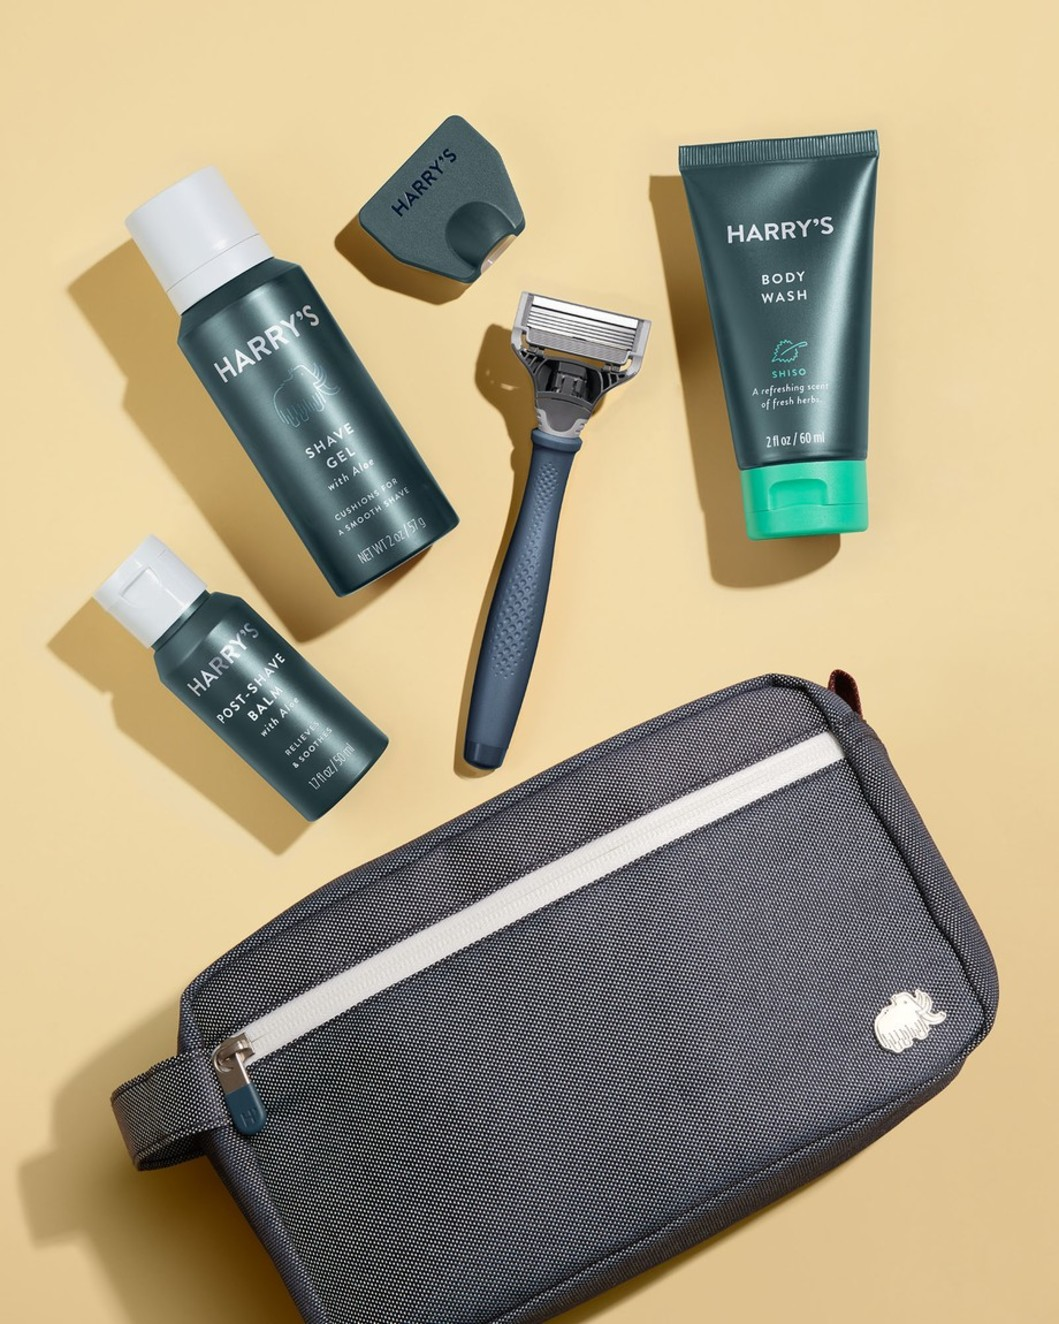 Deluxe Travel Kit - Blue Handle, Shiso Body Wash